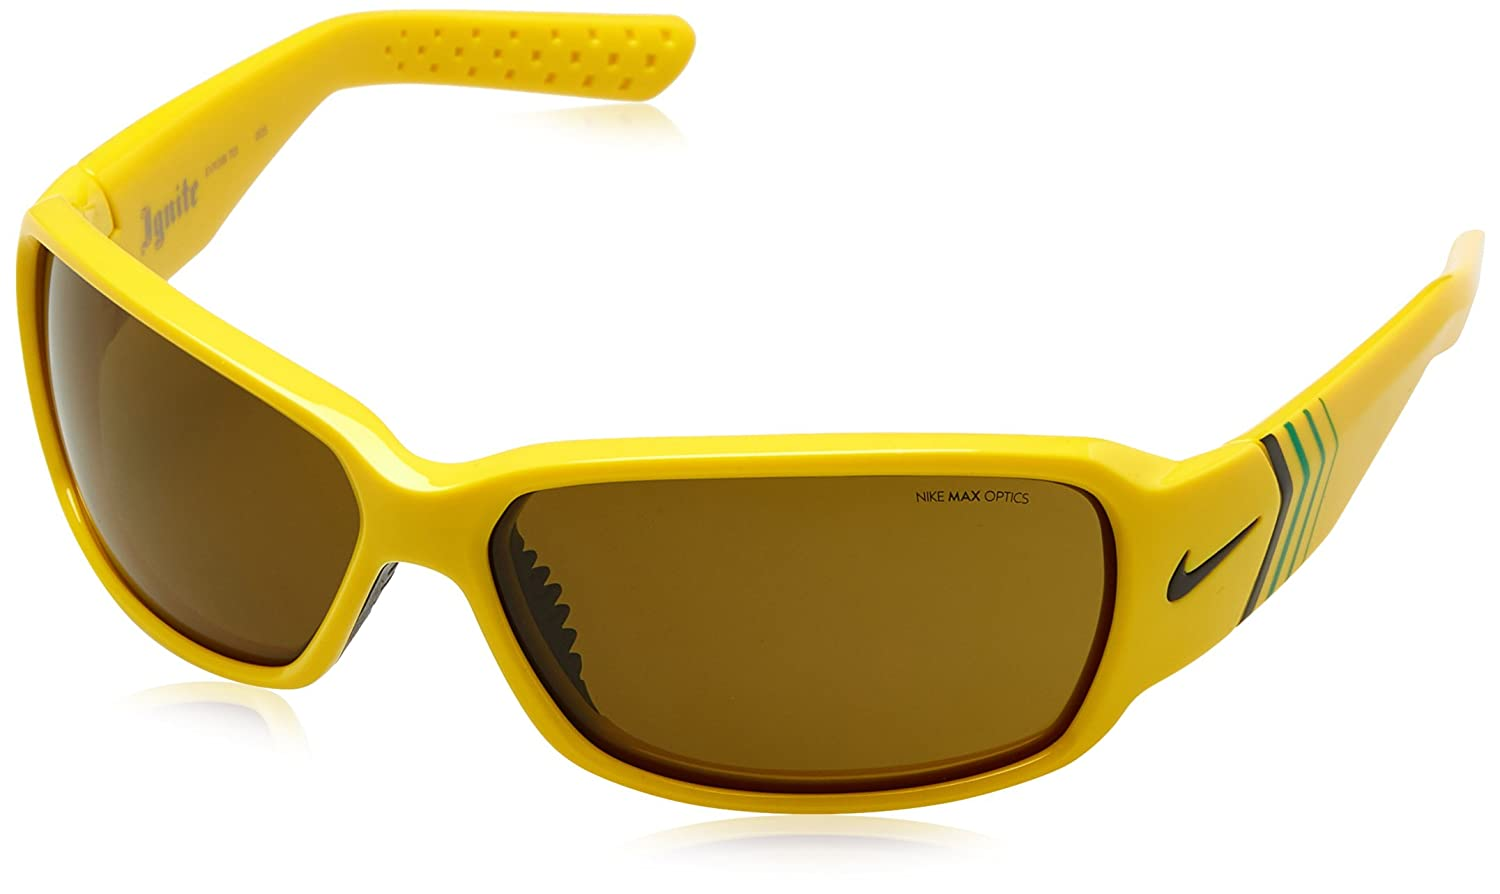 Nike NK-IGNITE-9318, Gafas de Sol Unisex Adulto, Amarillo (Yellow), 66: Amazon.es: Ropa y accesorios